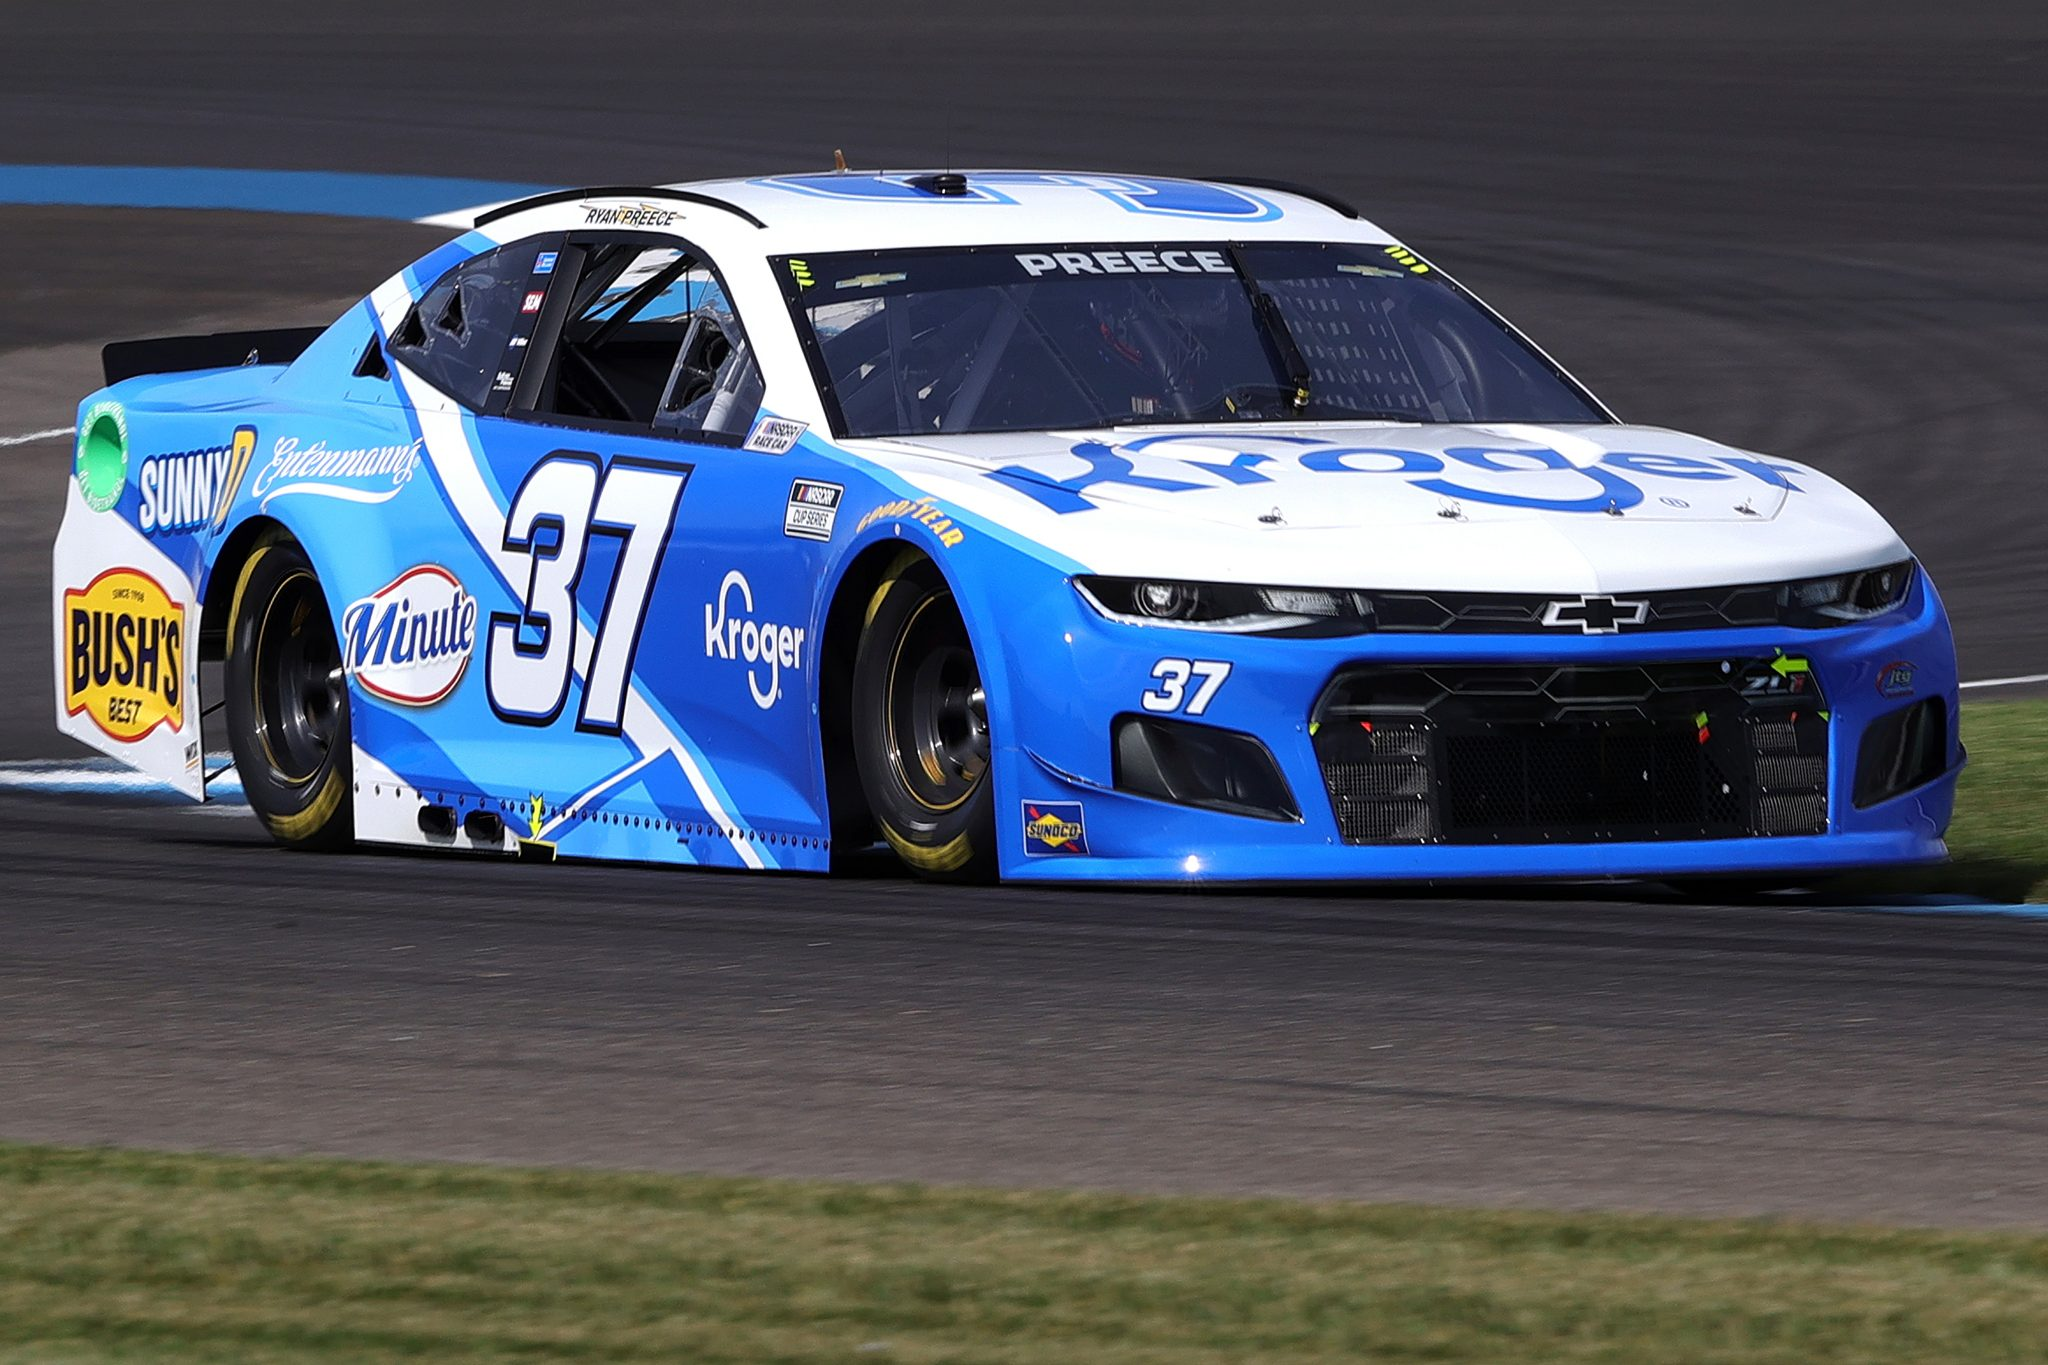 INDIANAPOLIS, INDIANA - AUGUST 14: Ryan Preece, driver of the #37 Kroger Chevrolet, drives during practice for the NASCAR Cup Series Verizon 200 at the Brickyard at Indianapolis Motor Speedway on August 14, 2021 in Indianapolis, Indiana. (Photo by Stacy Revere/Getty Images) | Getty Images